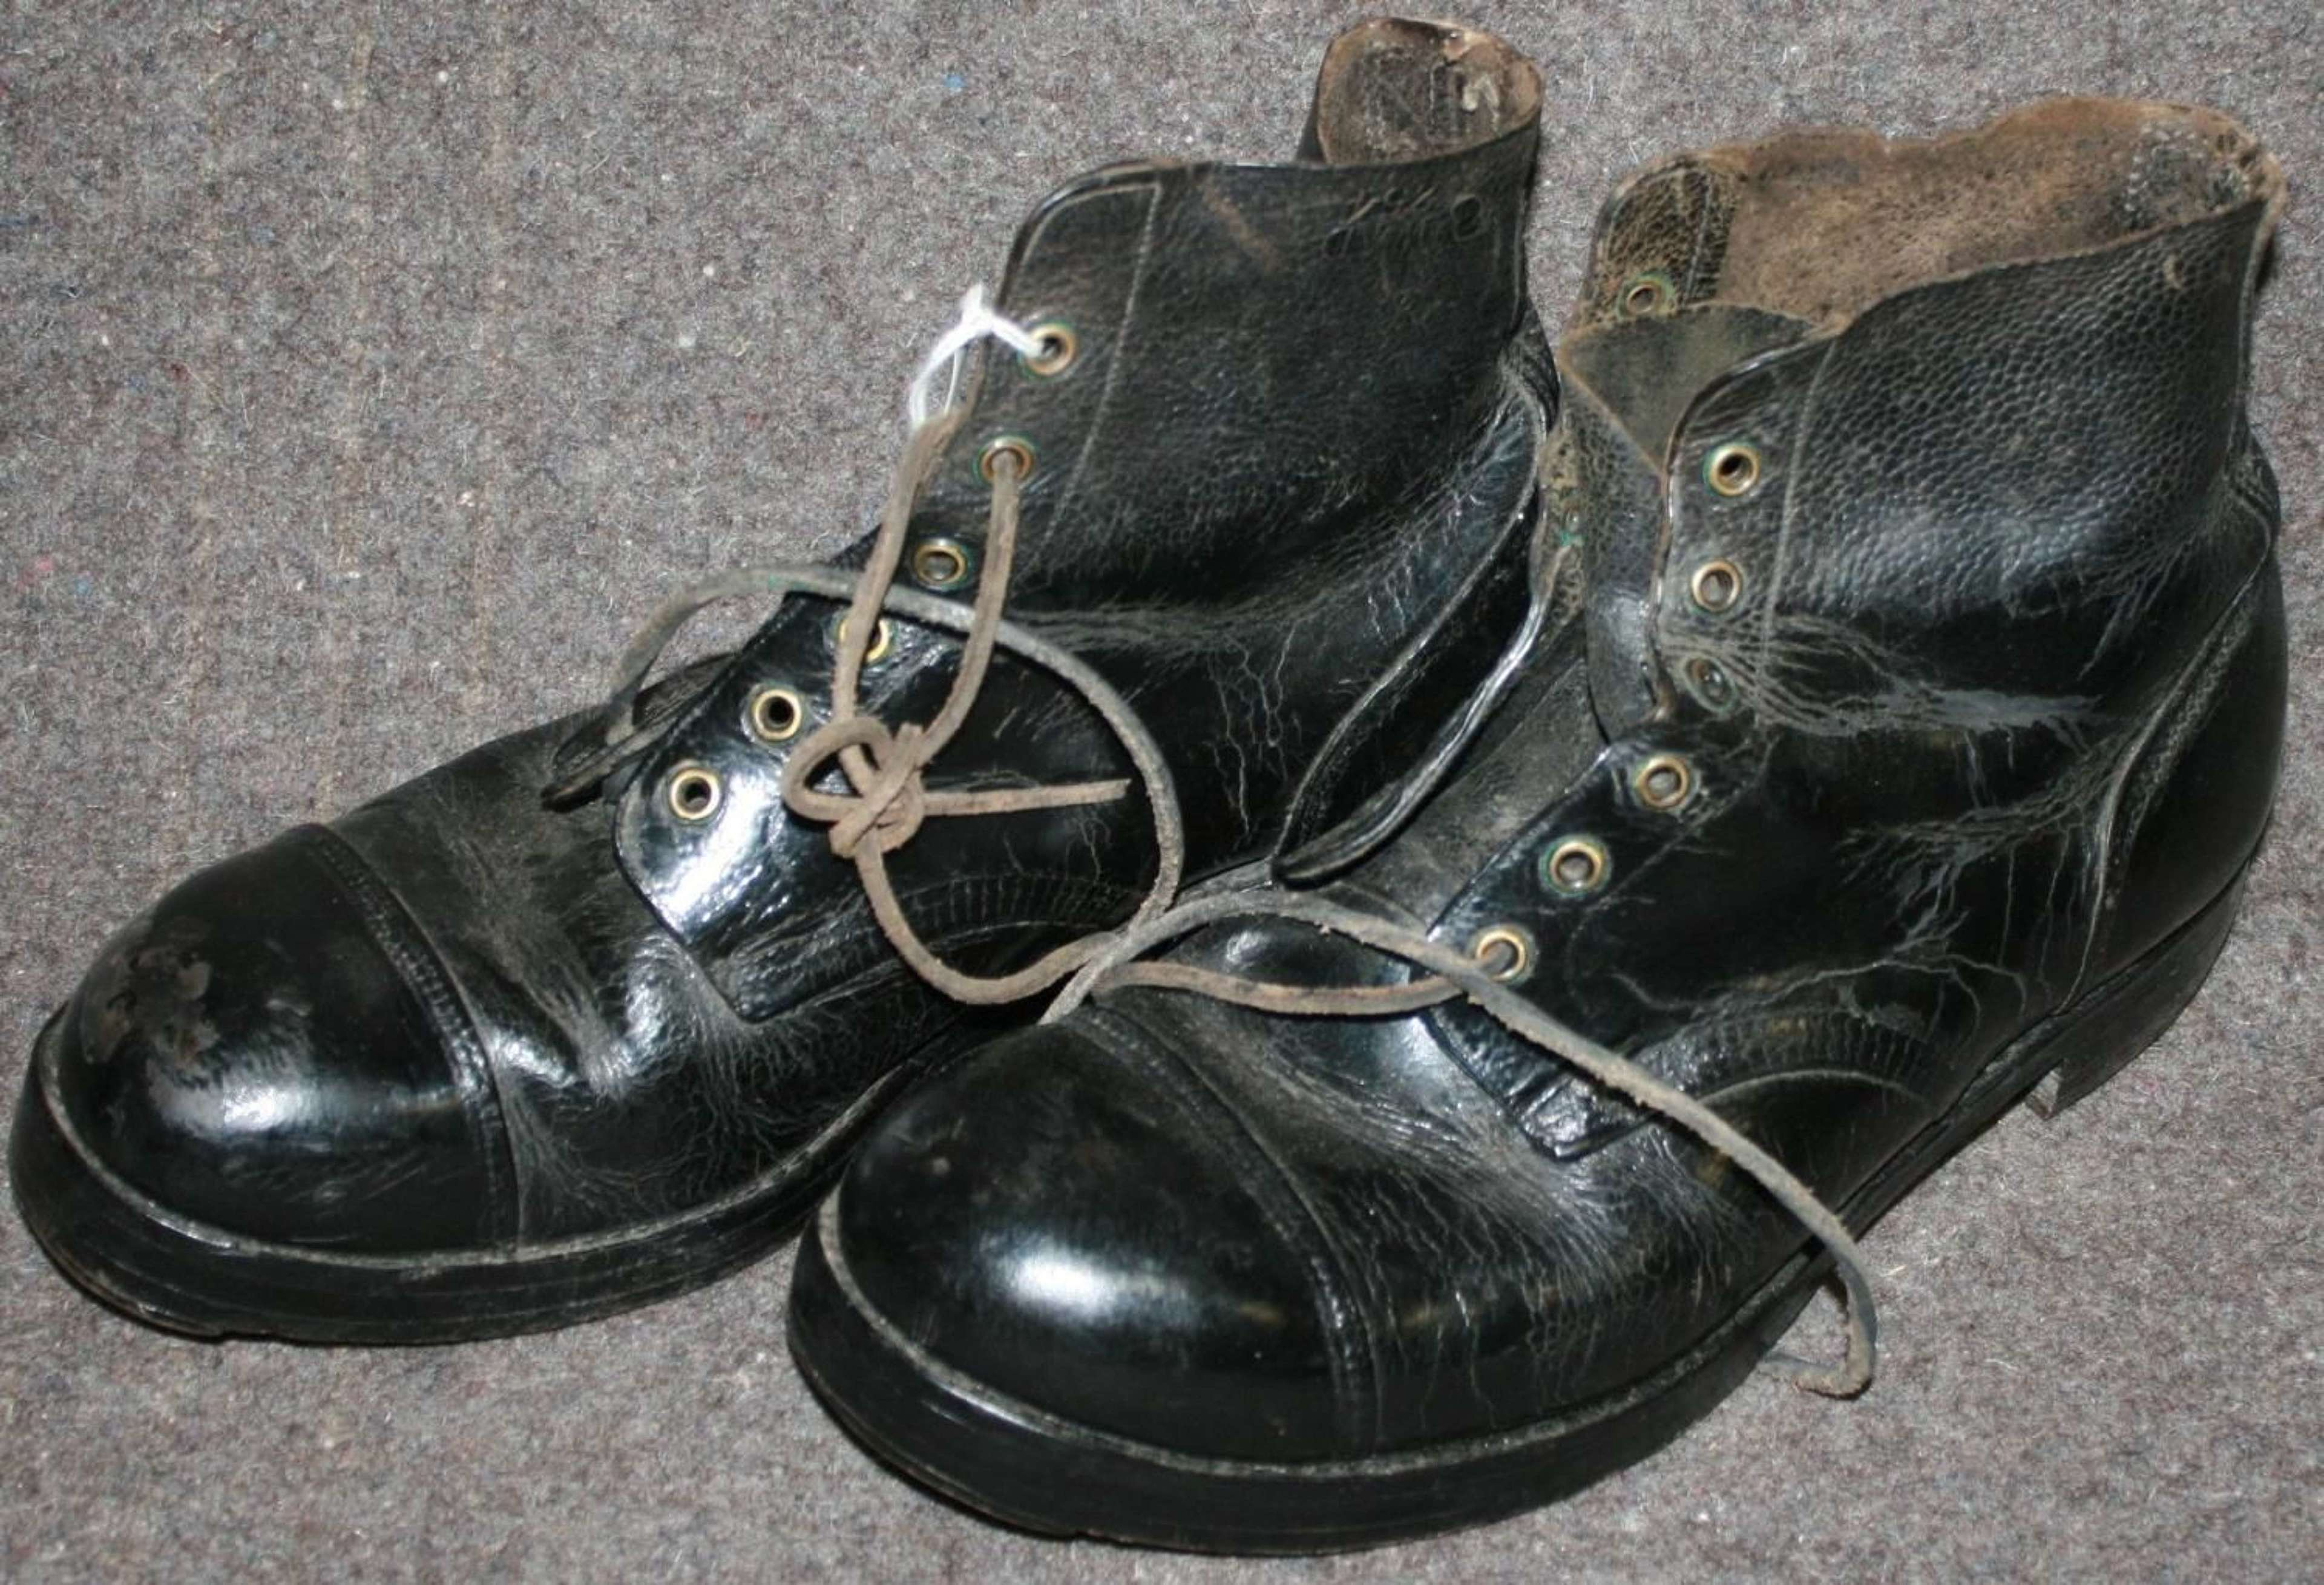 1943 DATED SIZE 11 HOBNAIL BOOTS in